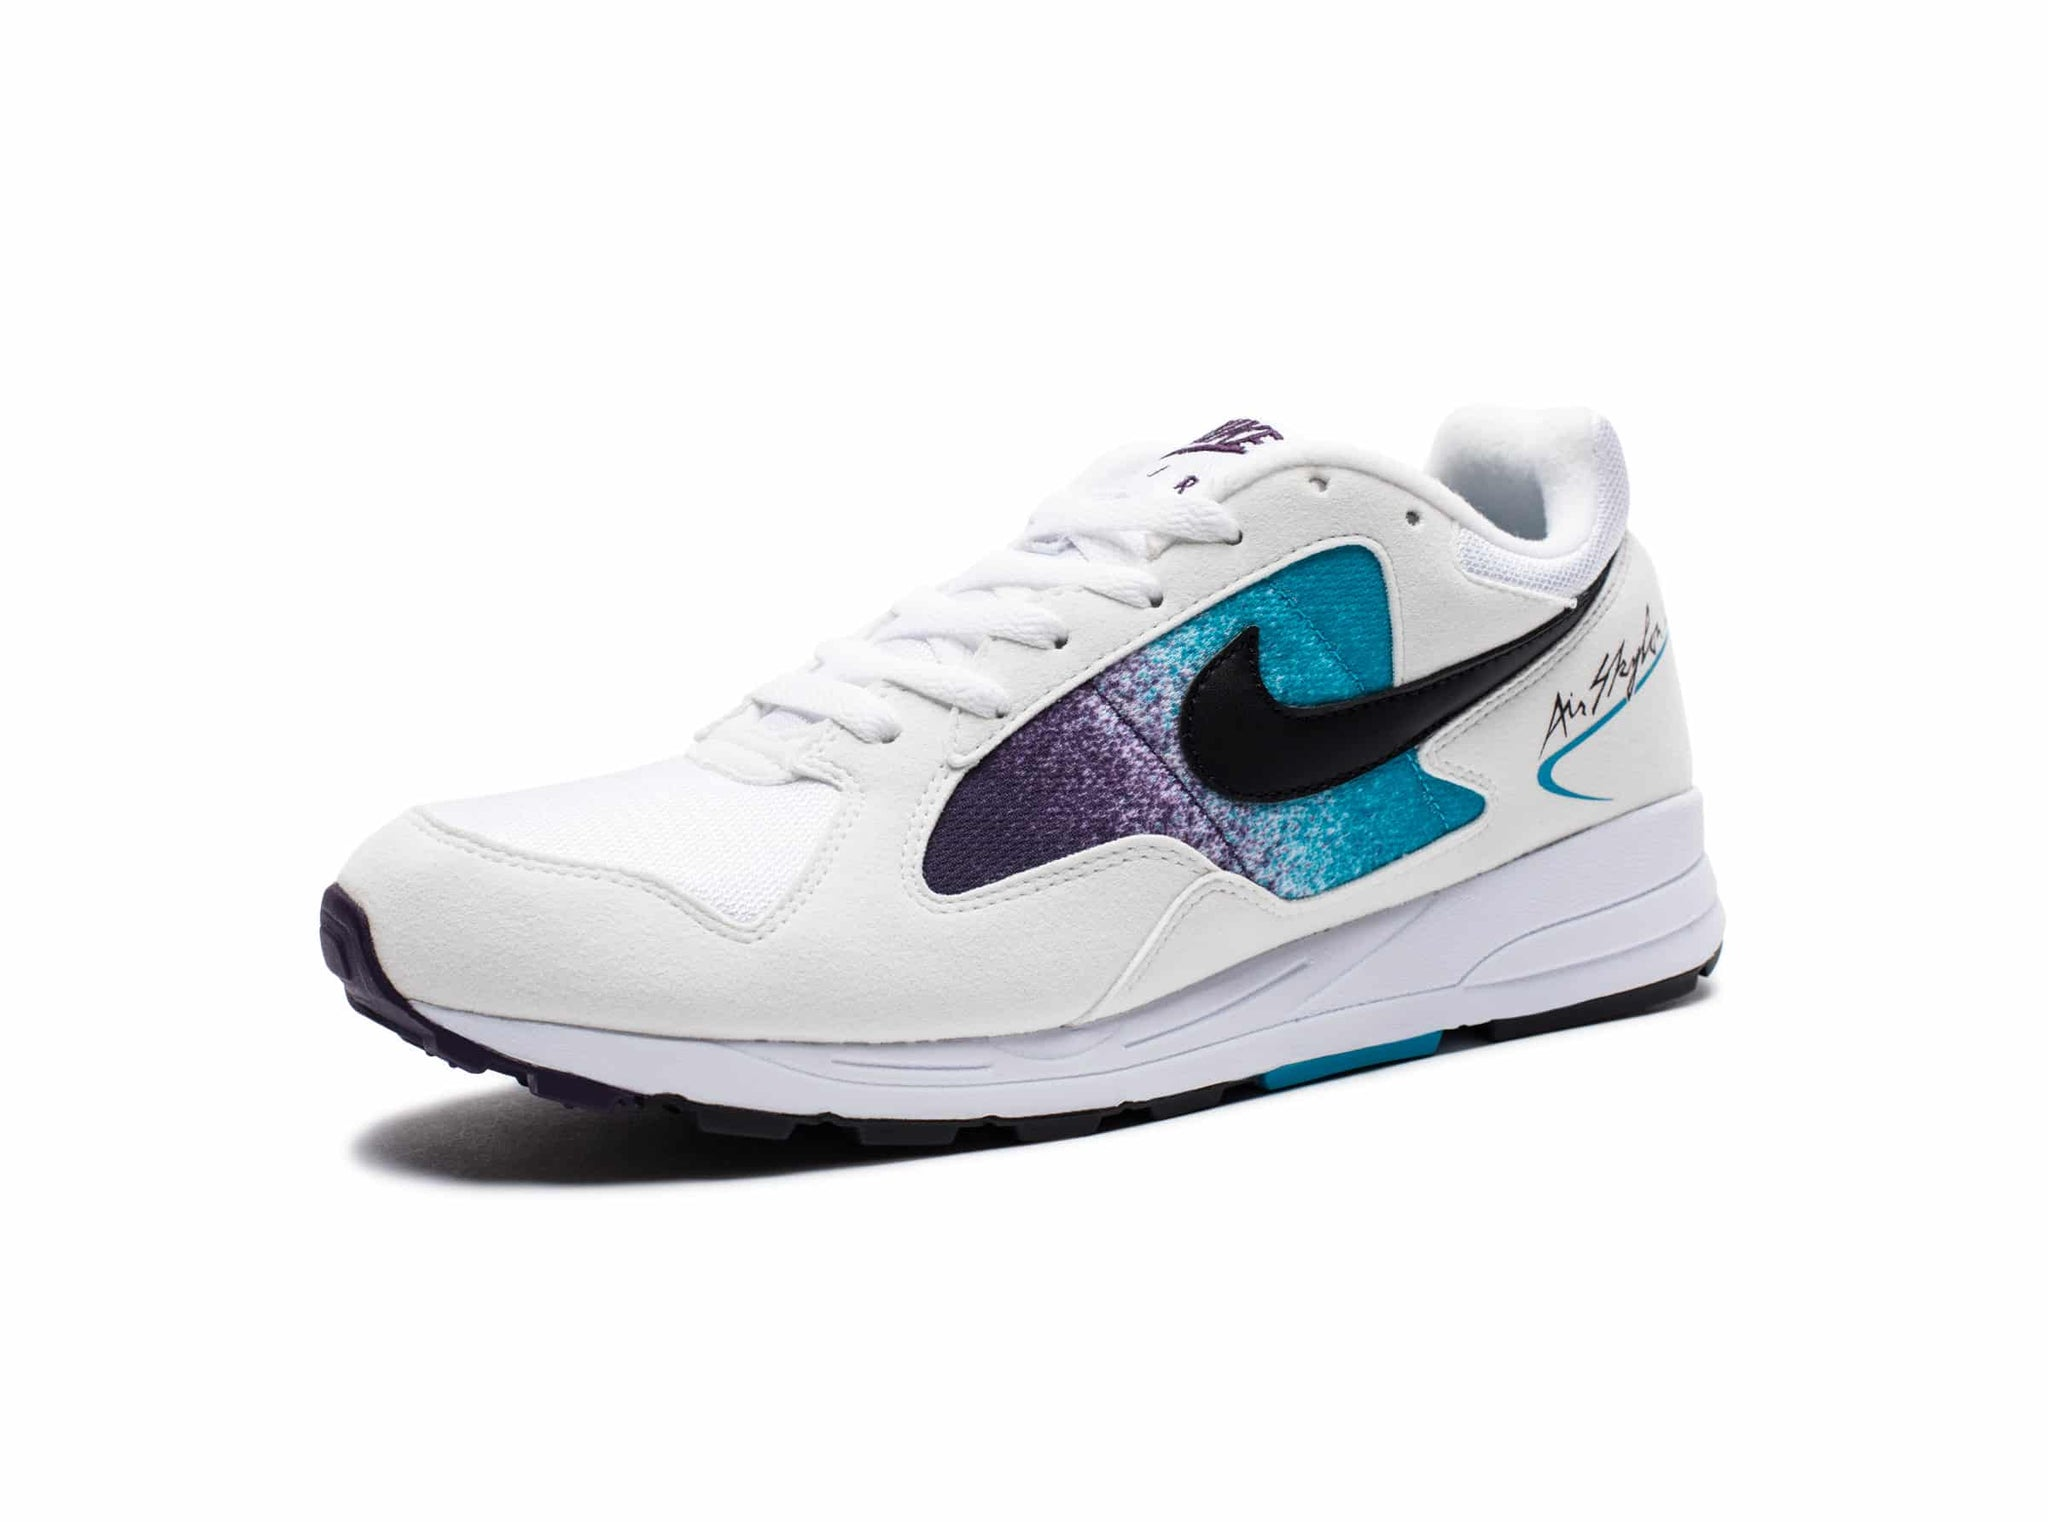 NIKE AIR SKYLON II - WHITE/BLACK/BLUELAGOON/GRANDPURPLE